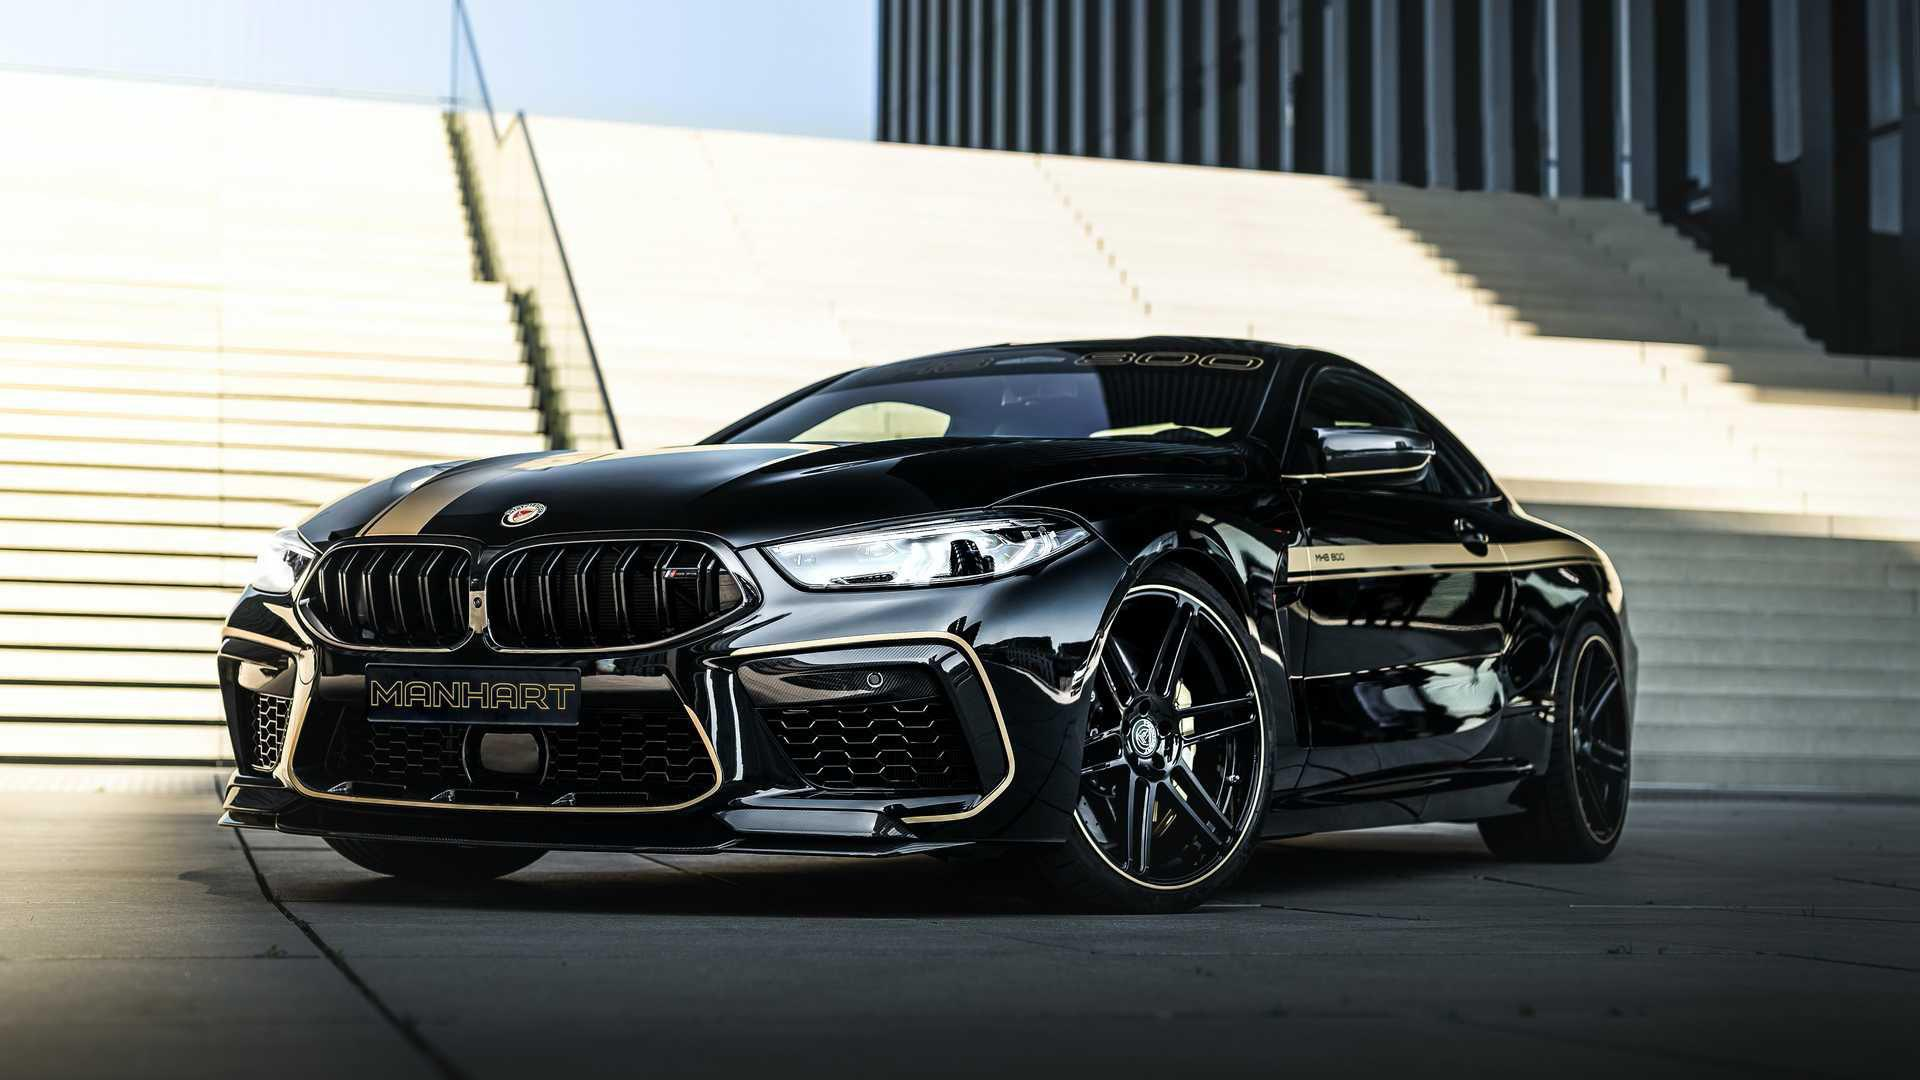 Cel mai rapid BMW M8 Competition din lume: Manhart MH8 800